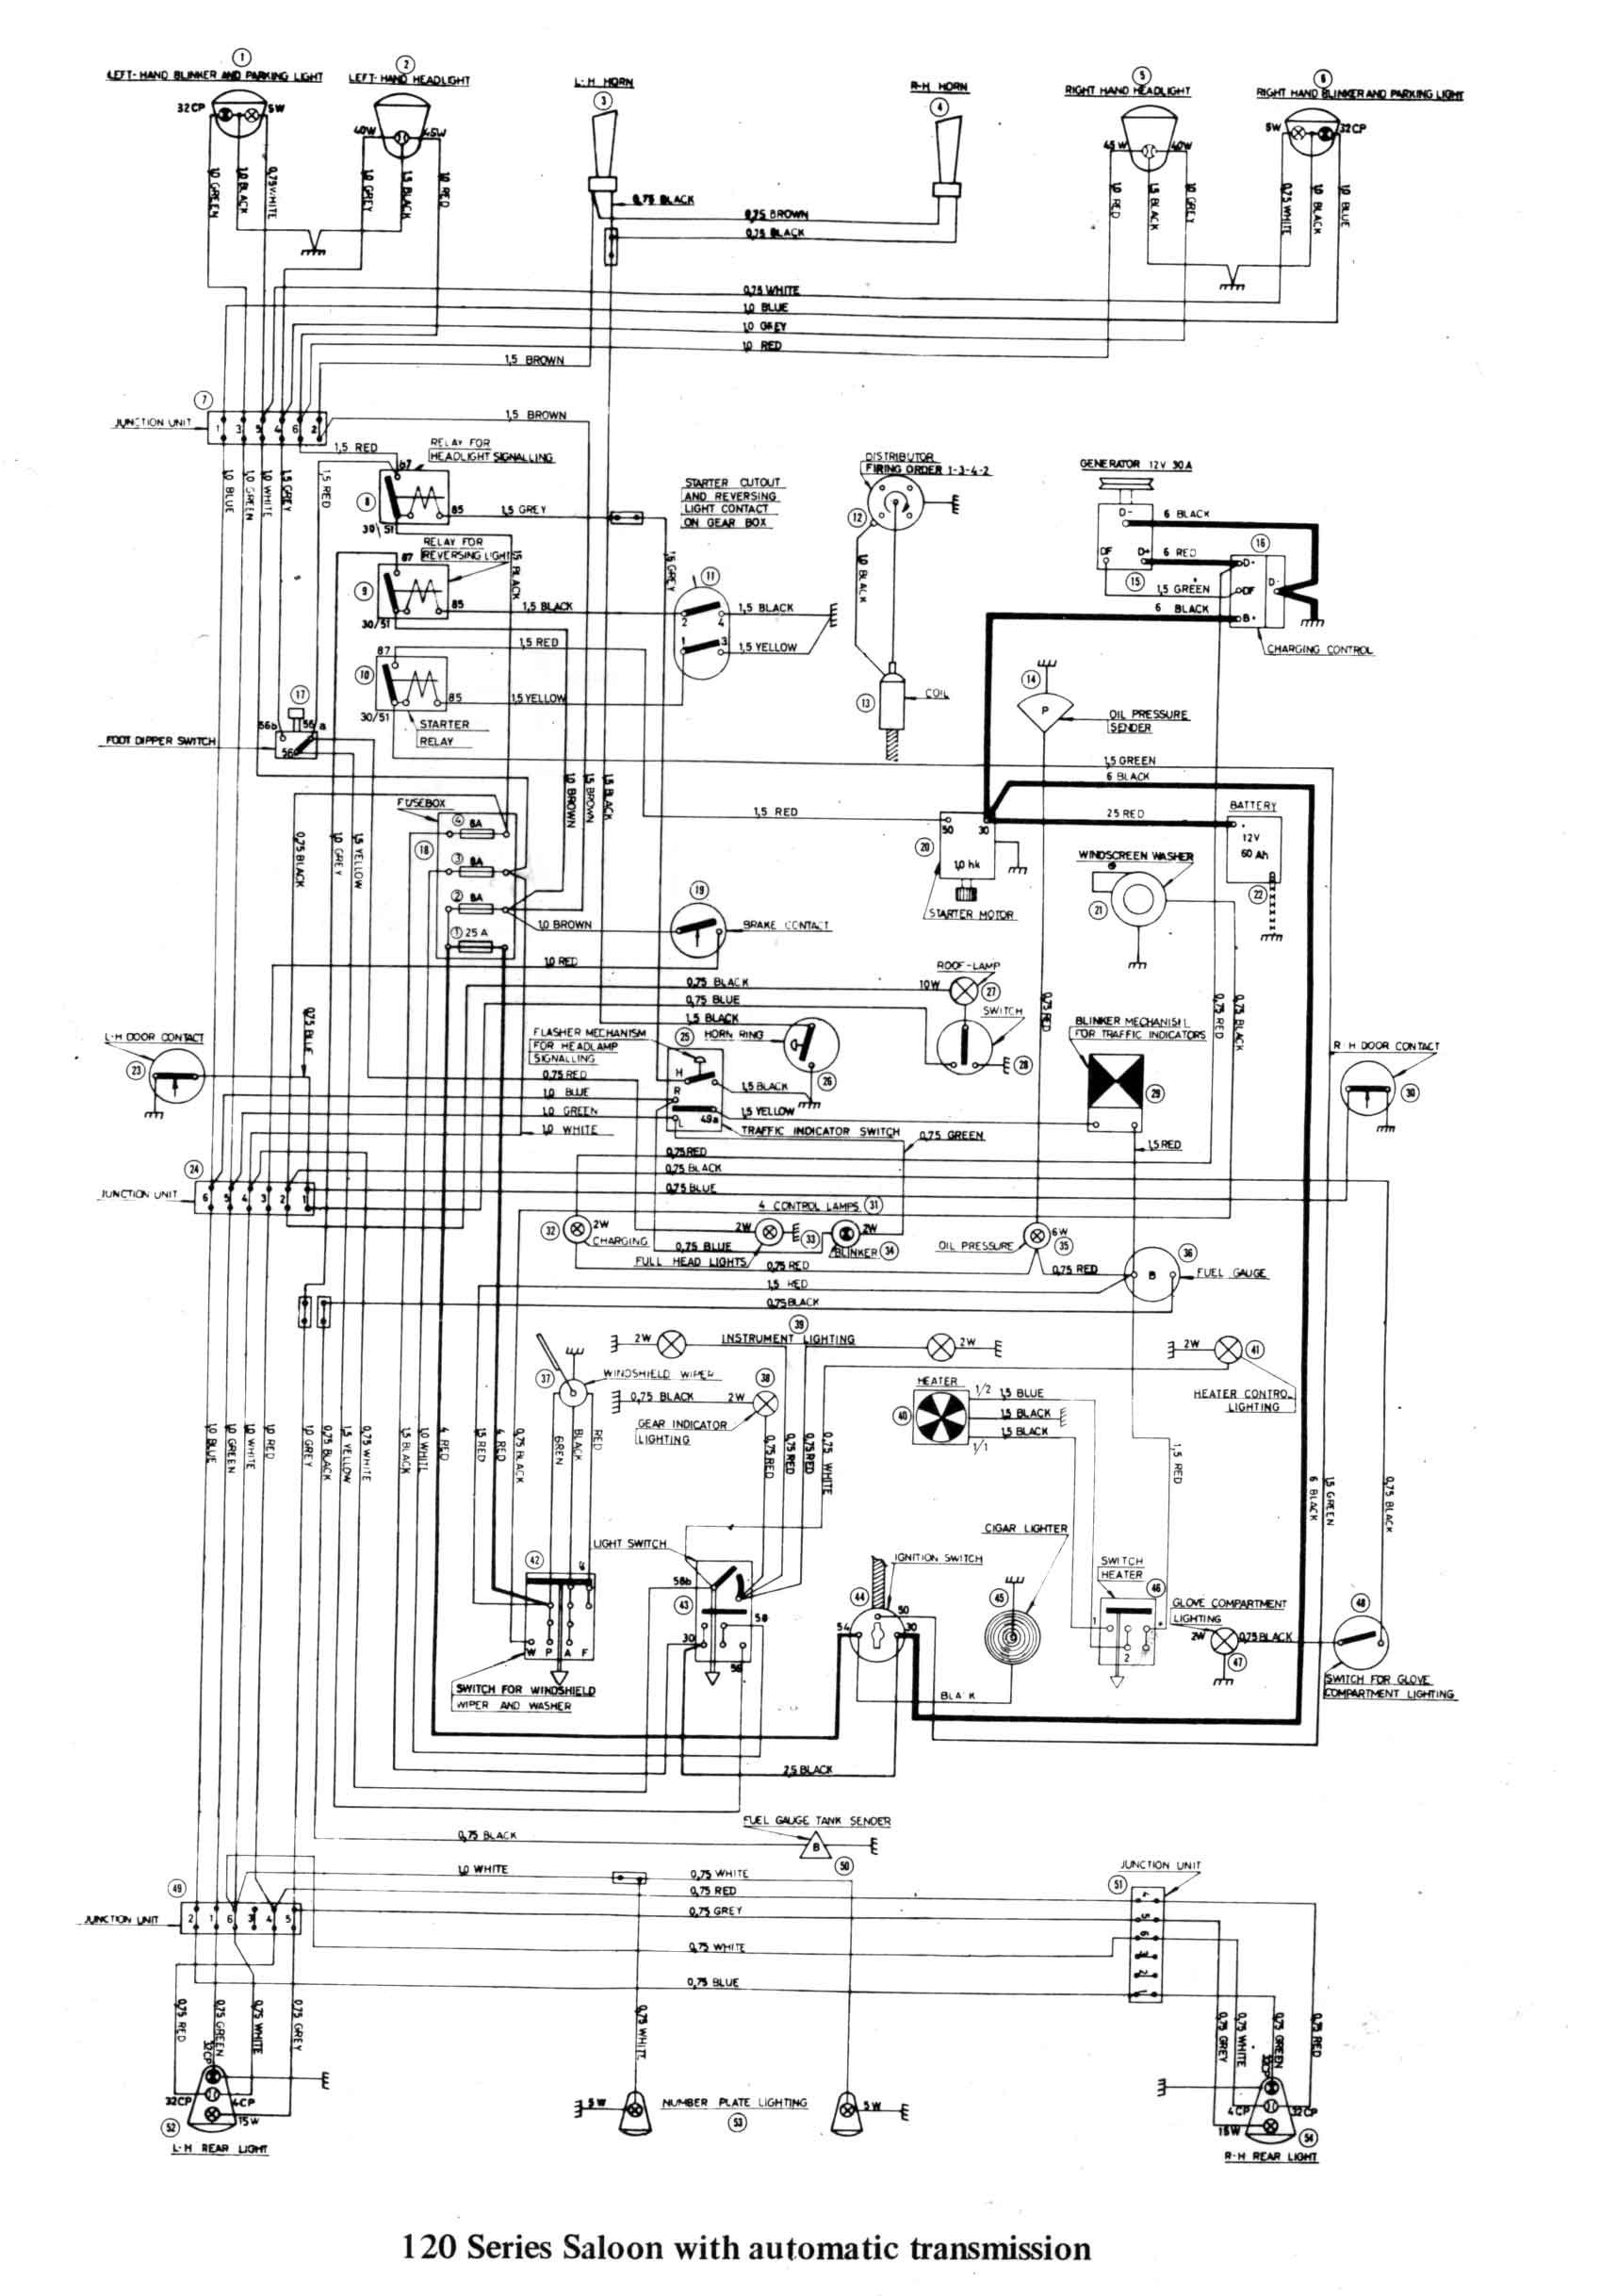 Car Electrical Wiring Diagram Unique Starter Wiring Diagram Diagram Of Car Electrical Wiring Diagram Auto Hoist Wiring Diagrams Cad 3 ton Hoist Wiring Diagram Wiring